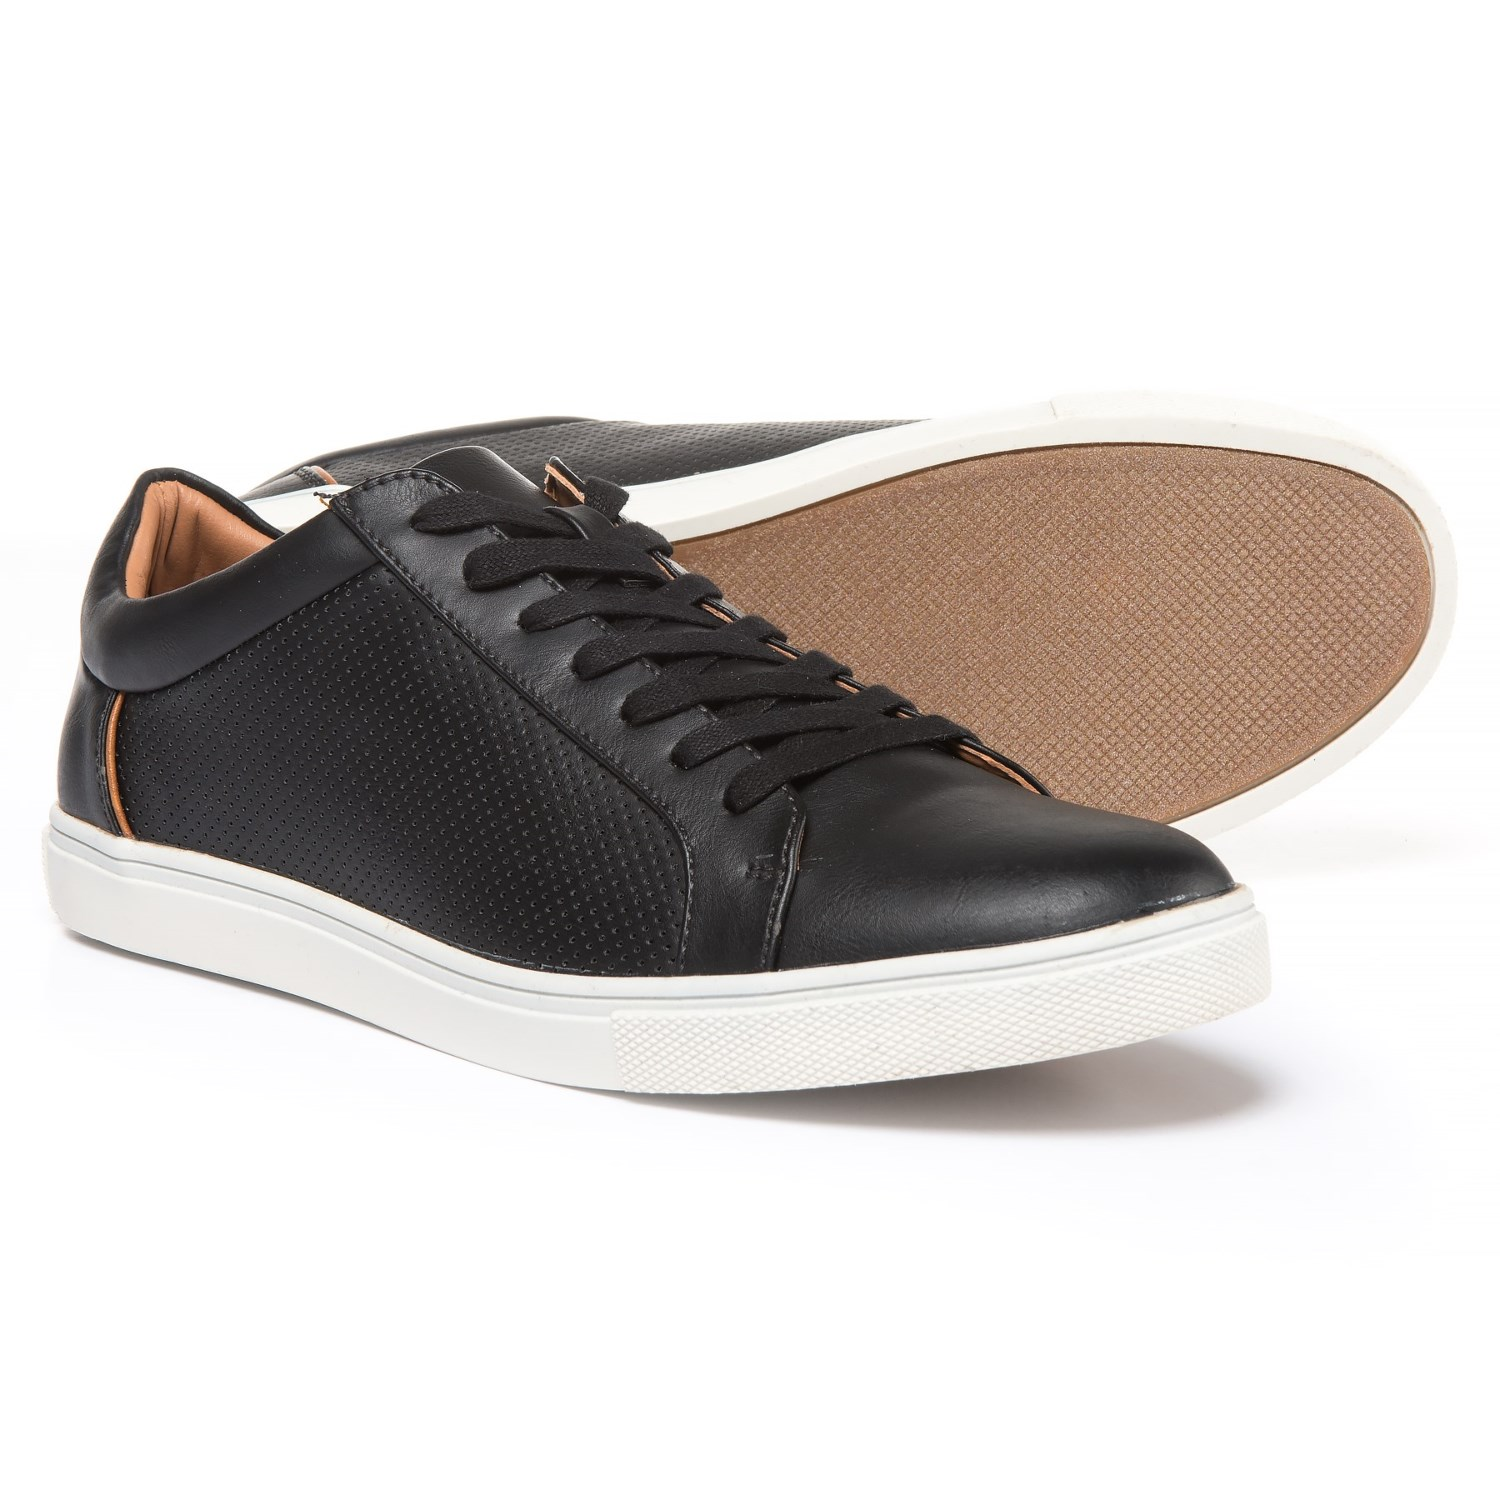 Steve Madden Early Sneakers - Vegan Leather (For Men) in Black